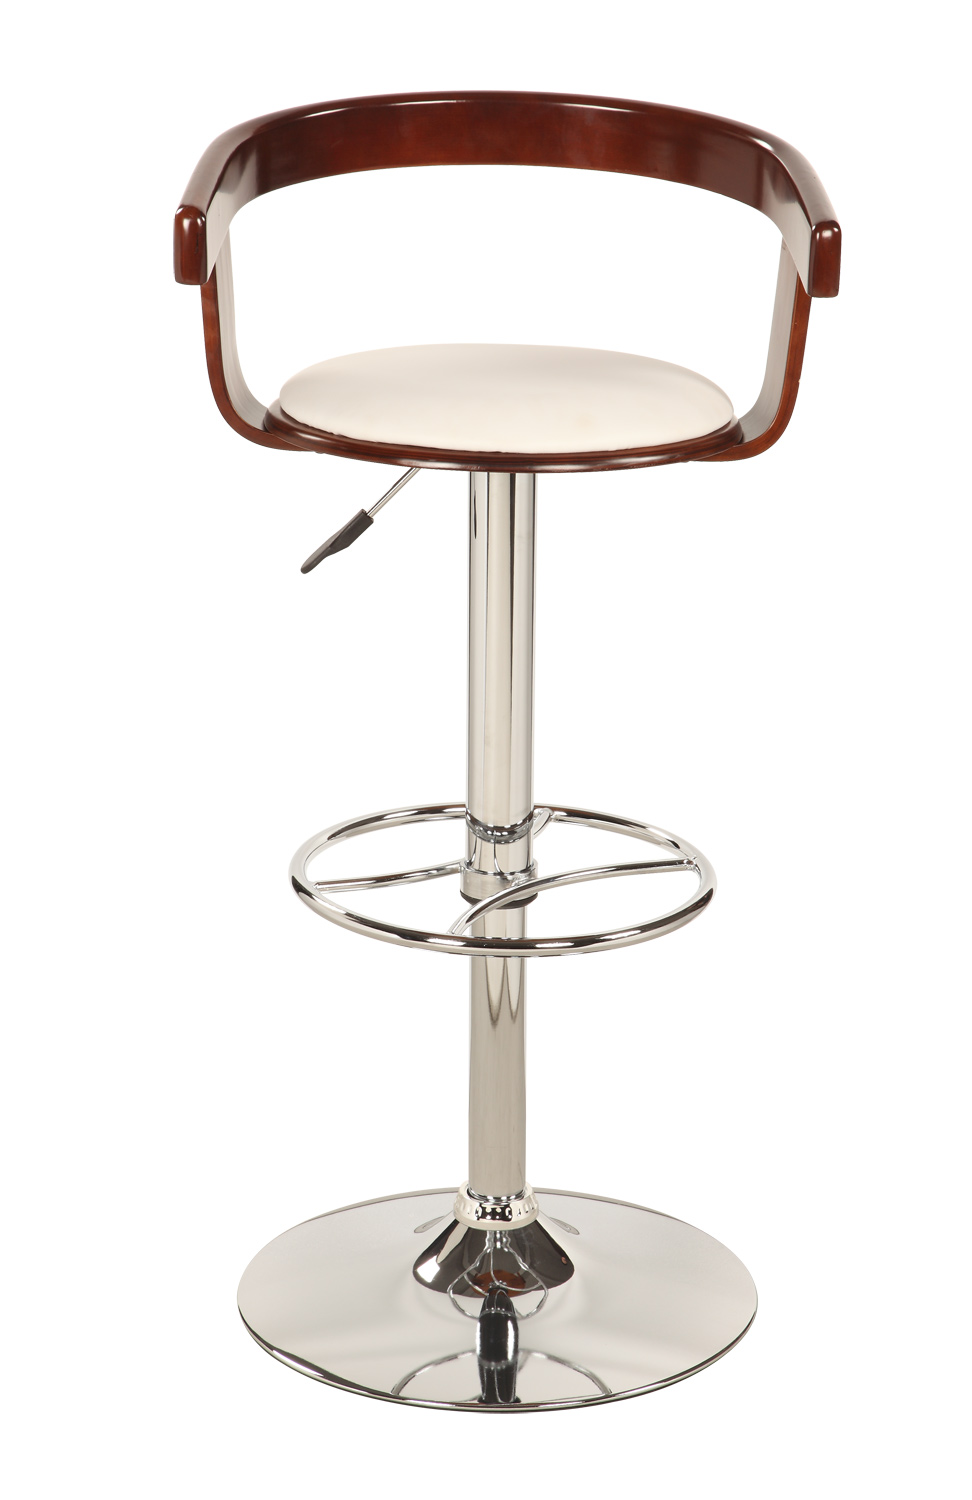 Chintaly Imports 1331 Bentwood Pneumatic Gas Lift Swivel Stool - Chrome/ Cherry